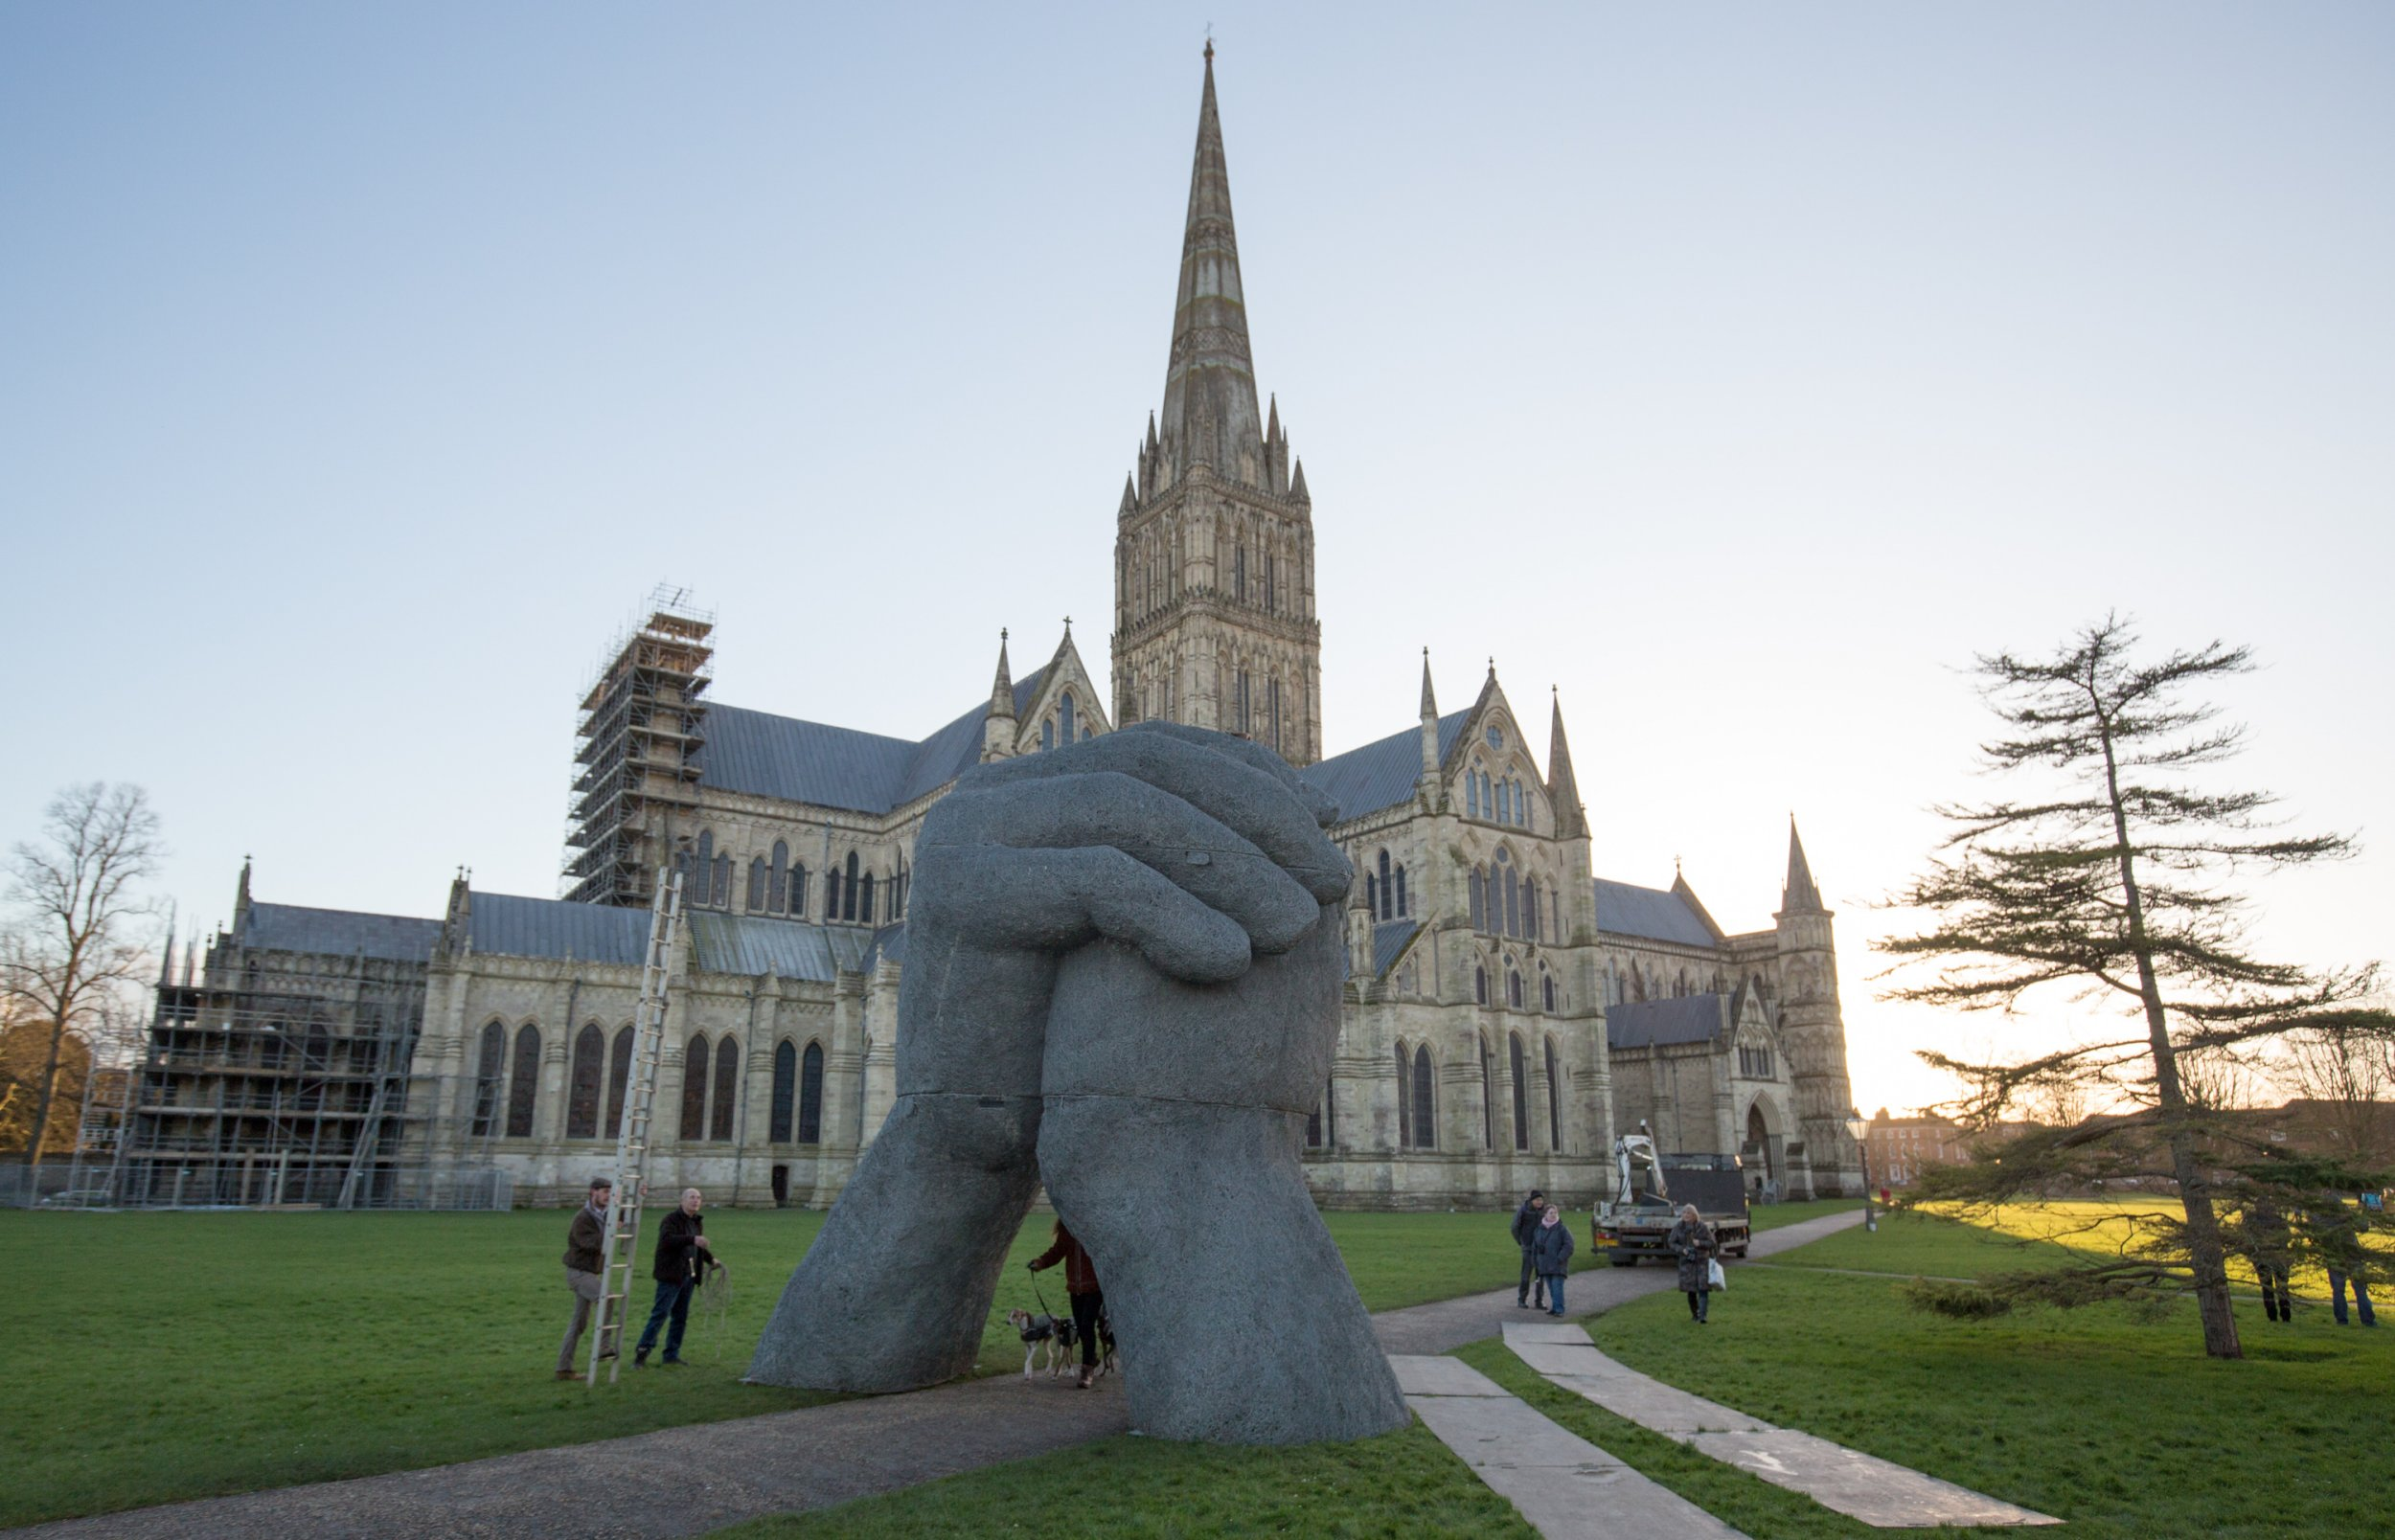 SALISBURY, ENGLAND - FEBRUARY 10: Sophie Ryder's sculpture The Kiss, is installed in the grounds of Salisbury Cathedral as part of an exhibition by the artist on February 10, 2016 in Salisbury, England. The solo exhibition, Relationships, featuring life-sized Minotaurs, Lady Hares and giant 20ft high clasped hands installed in and around the historic Cathedral, opens on February 12 and runs until July 3 (Photo by Matt Cardy/Getty Images)